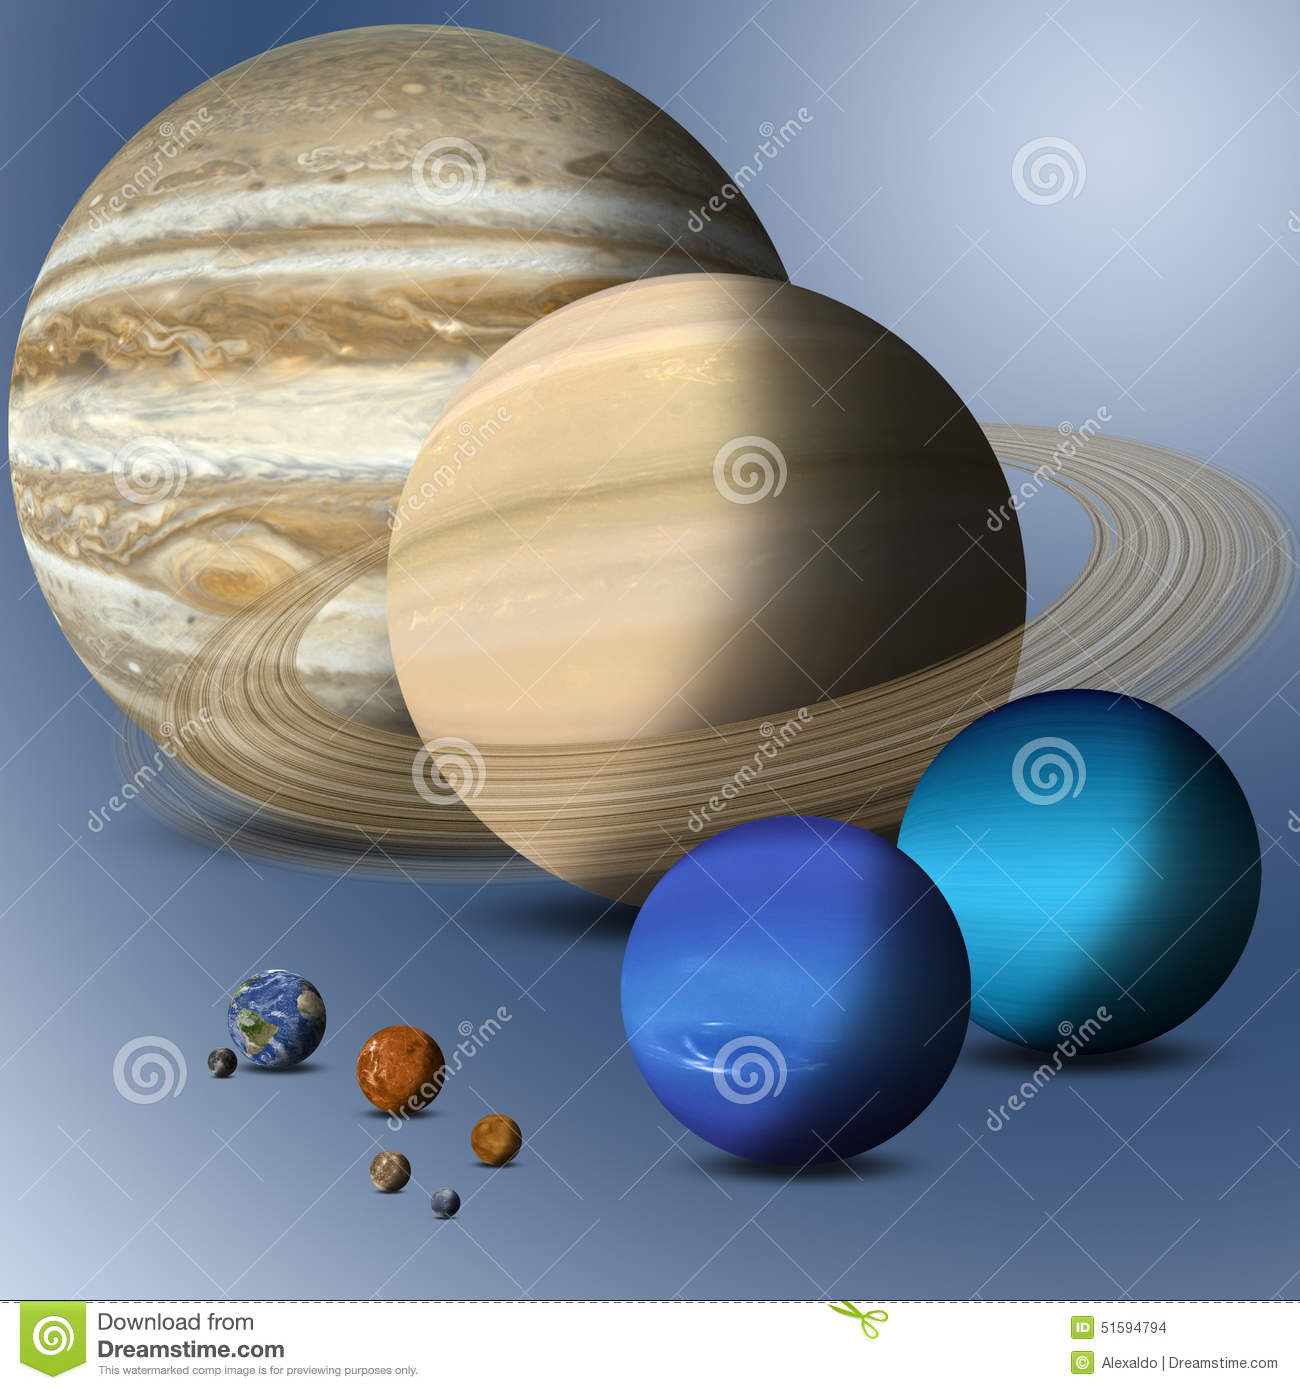 Planets Of Solar System Full Size Comparison Stock ...